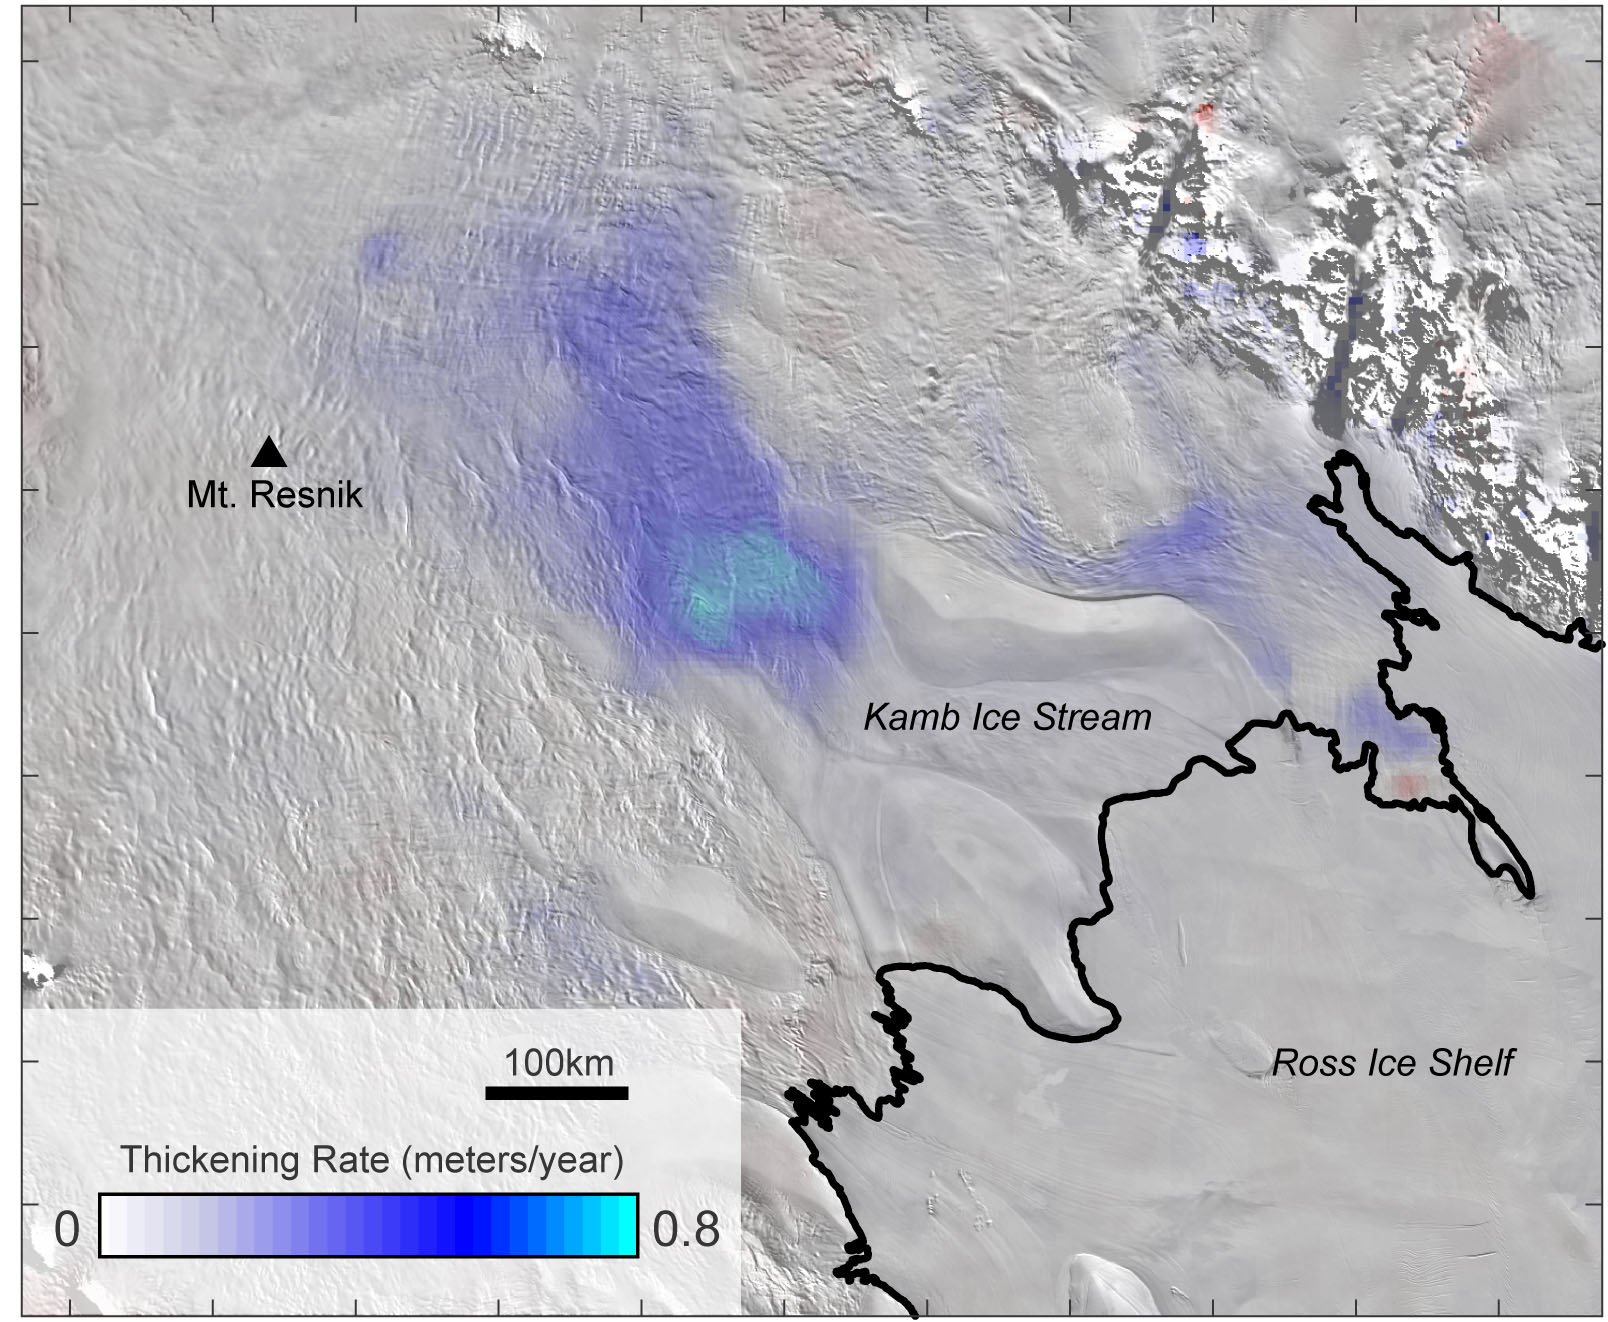 Volcano under ice sheet suggests thickening of West ... on physical map of antarctica, rainfall map of antarctica, geomorphology of antarctica, world map of antarctica, climate map of antarctica, political map of antarctica, satellite view of antarctica, a map of antarctica, topographic maps 4 regions, choropleth map of antarctica, scale map of antarctica, ancient maps of antarctica, topography of antarctica, geologic map of antarctica, economic map of antarctica, soil of antarctica, boundary map of antarctica, water map of antarctica, map map of antarctica, outline map of antarctica,